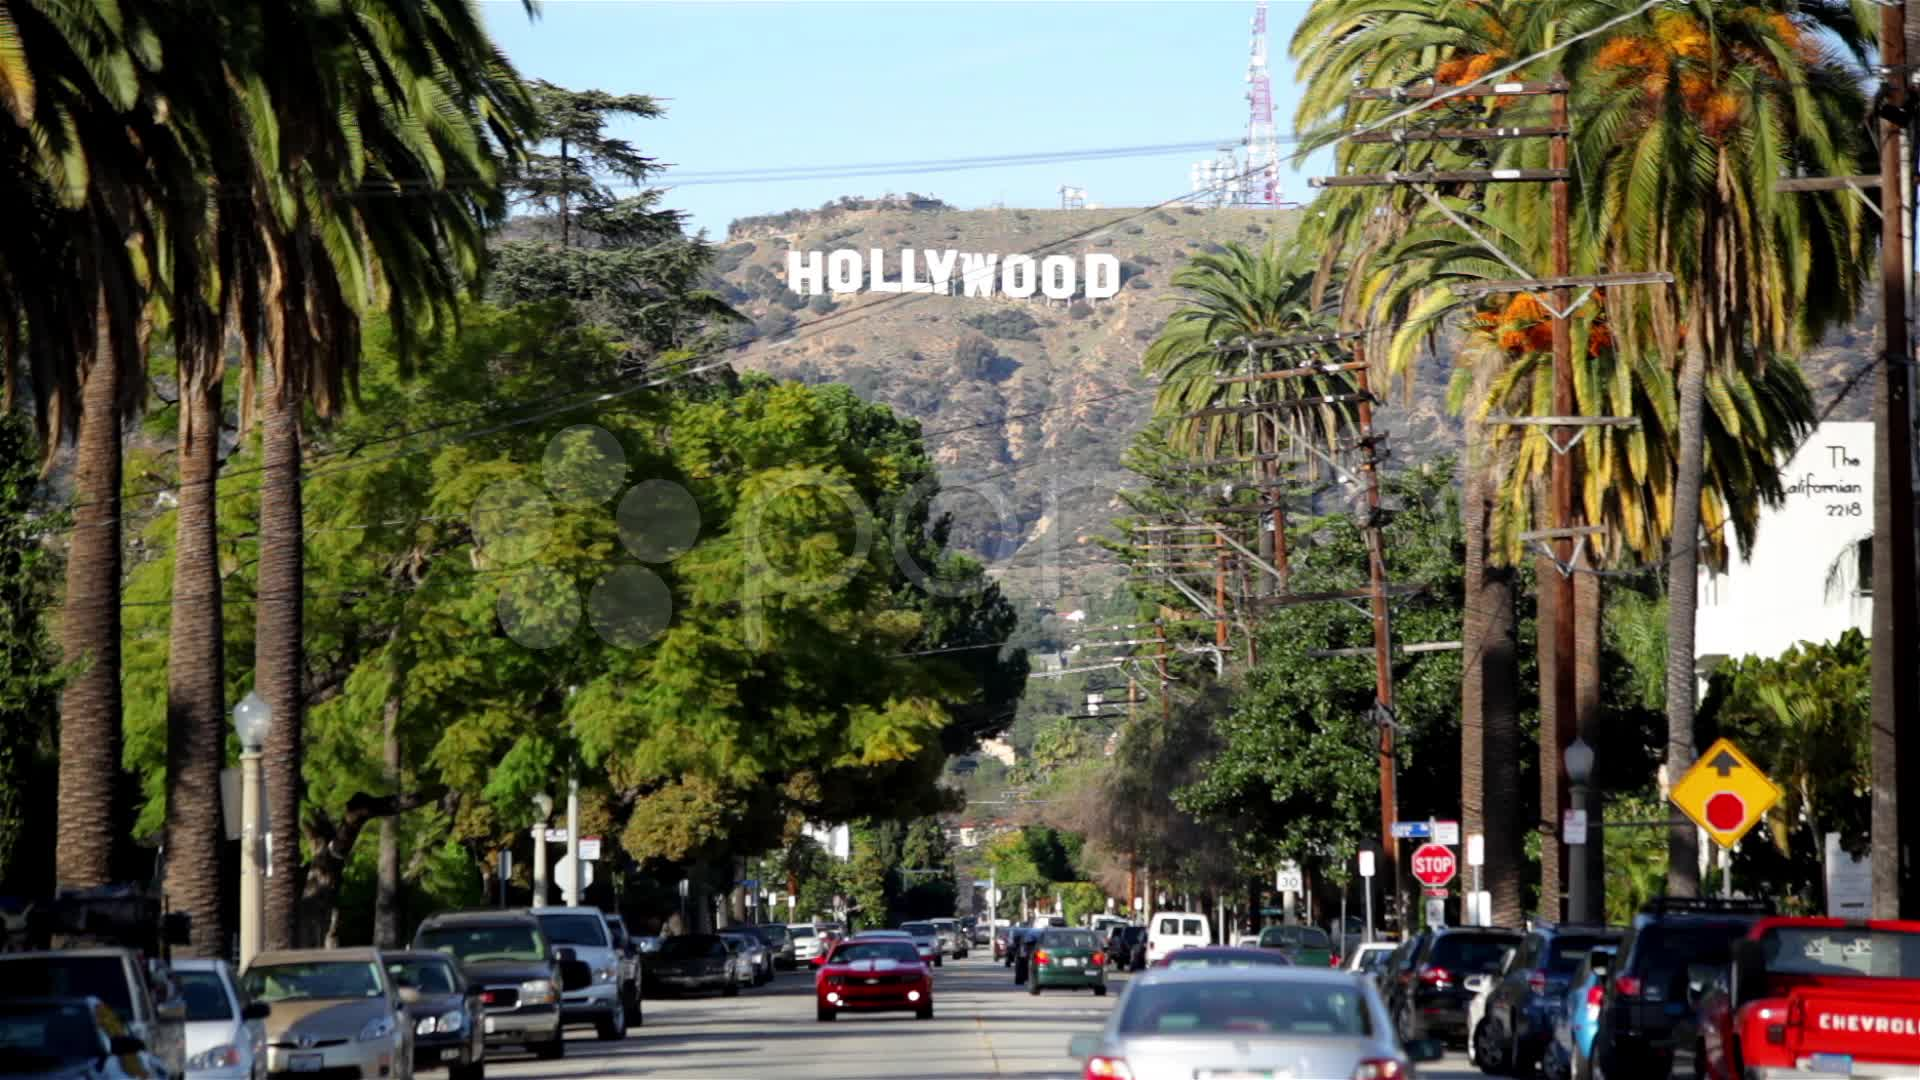 Cool Hollywood Sign Wallpaper Hollywood sign 12 hd 1920x1080